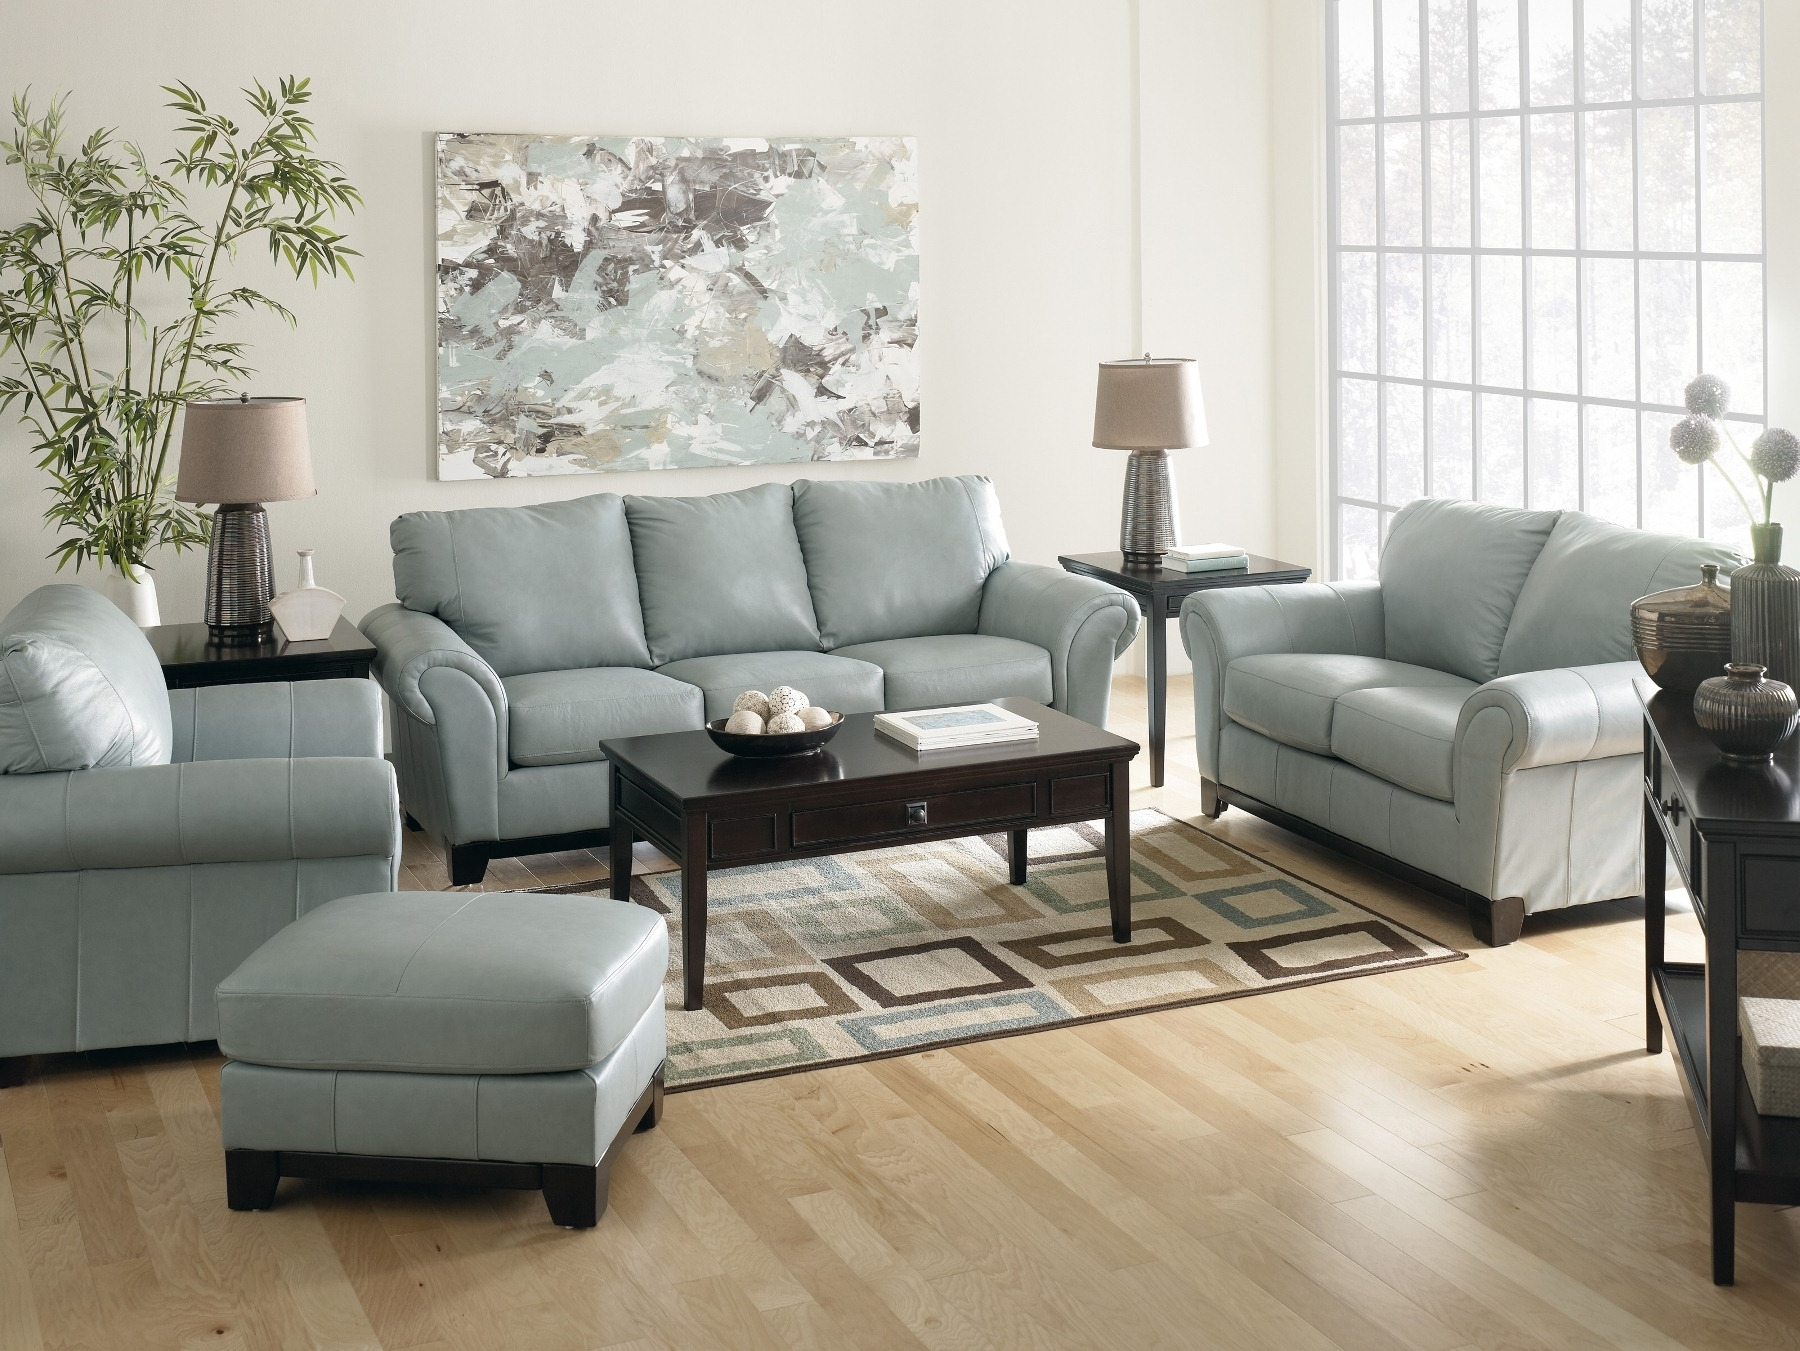 Trendy Sofa : Leather Sleeper Sofa Sky Blue Sofa Leather Furniture Dark In Blue Sofa Chairs (View 11 of 20)